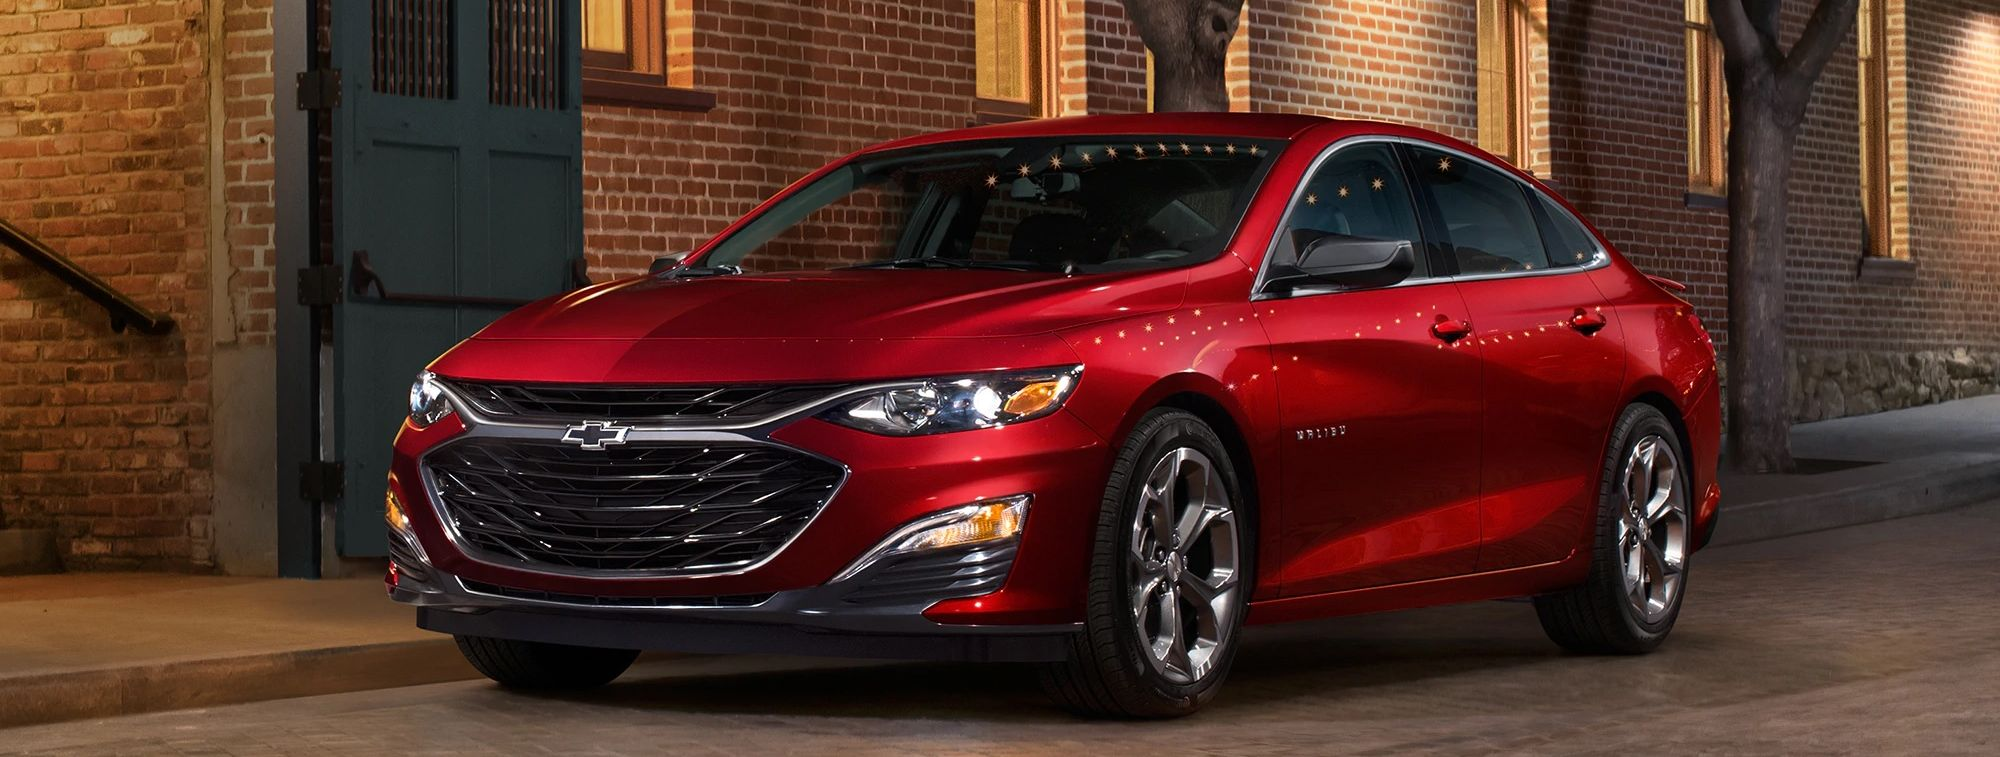 2019 Chevrolet Malibu for Sale near Claremore, OK